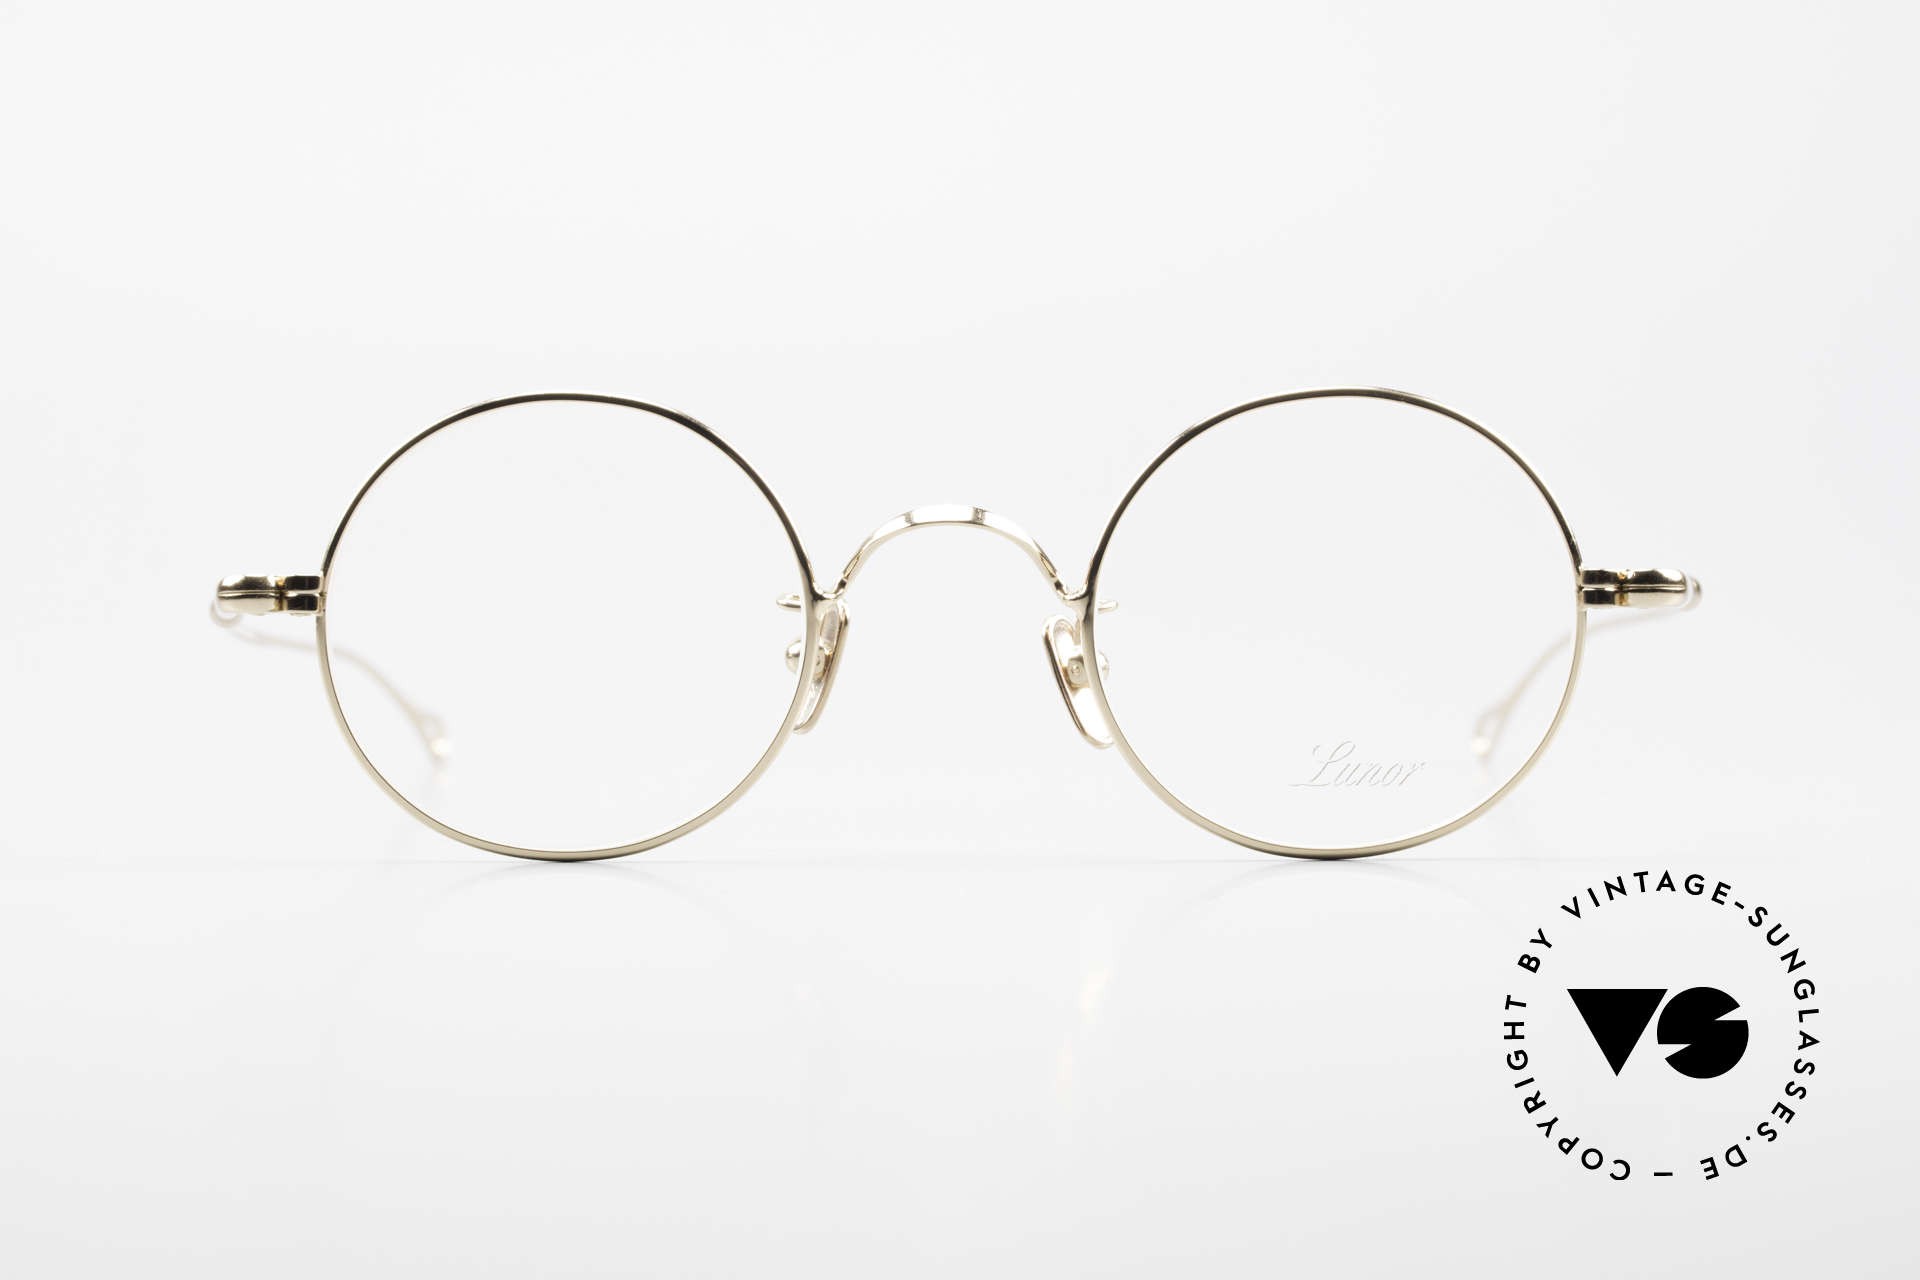 Lunor V 110 Lunor Round Glasses GP Gold, LUNOR: honest craftsmanship with attention to details, Made for Men and Women